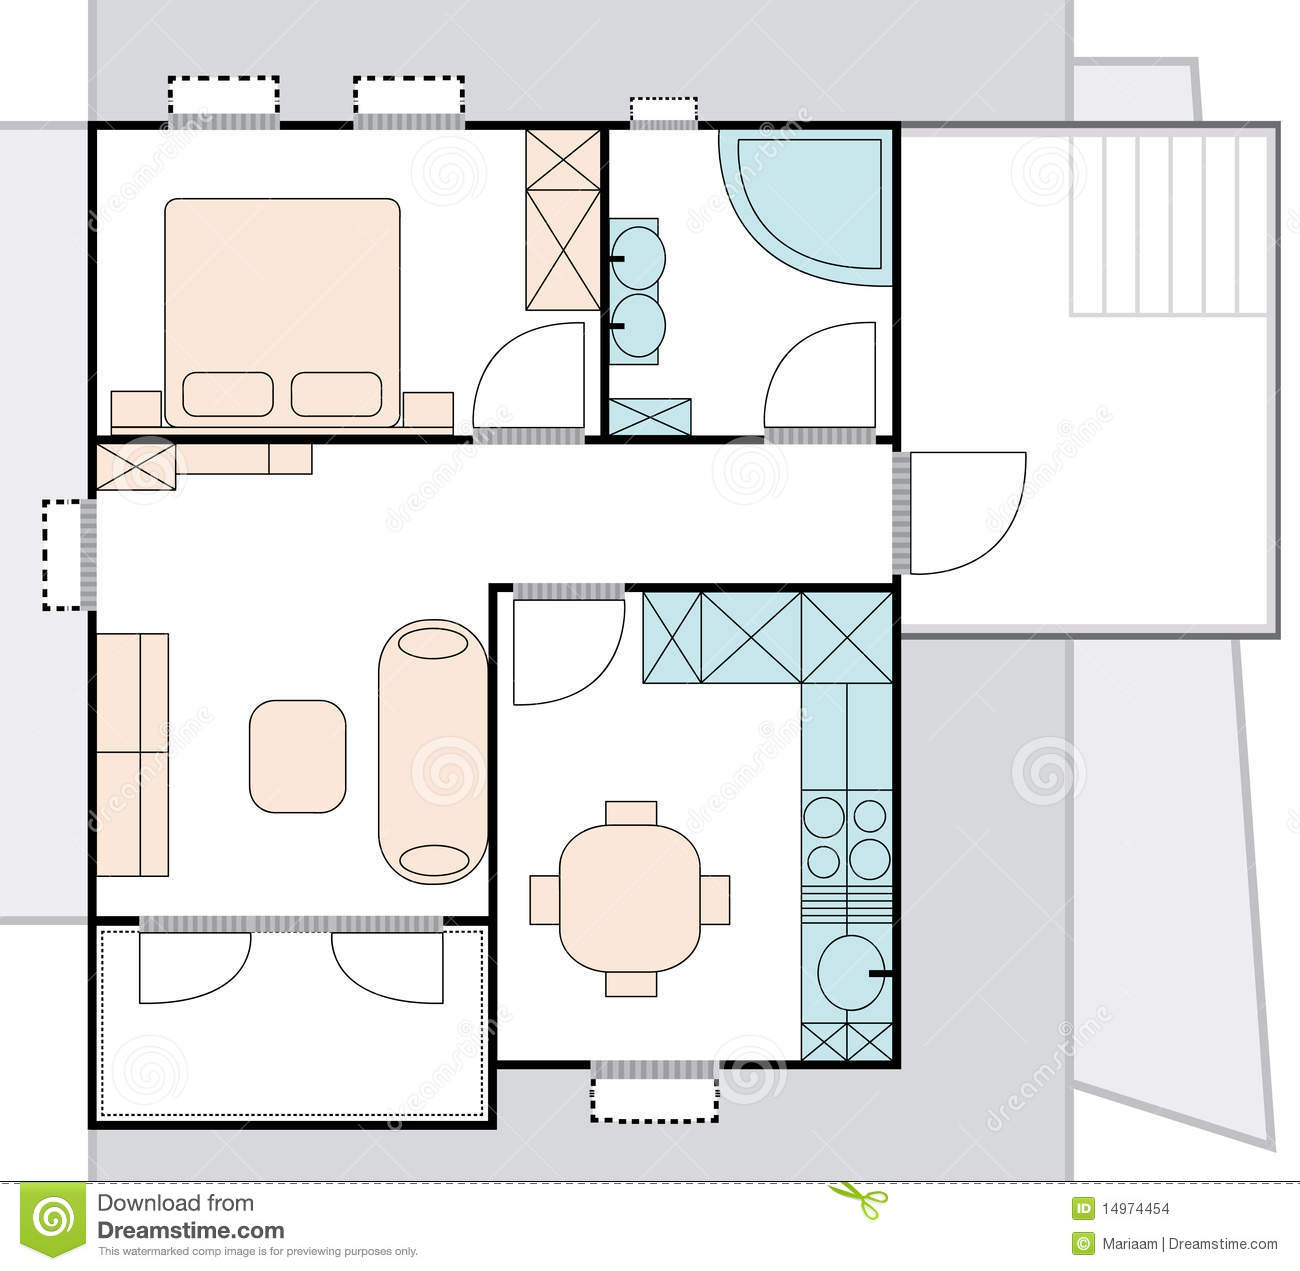 Plan d 39 architecture d 39 appartement illustration stock for Plan d architecture